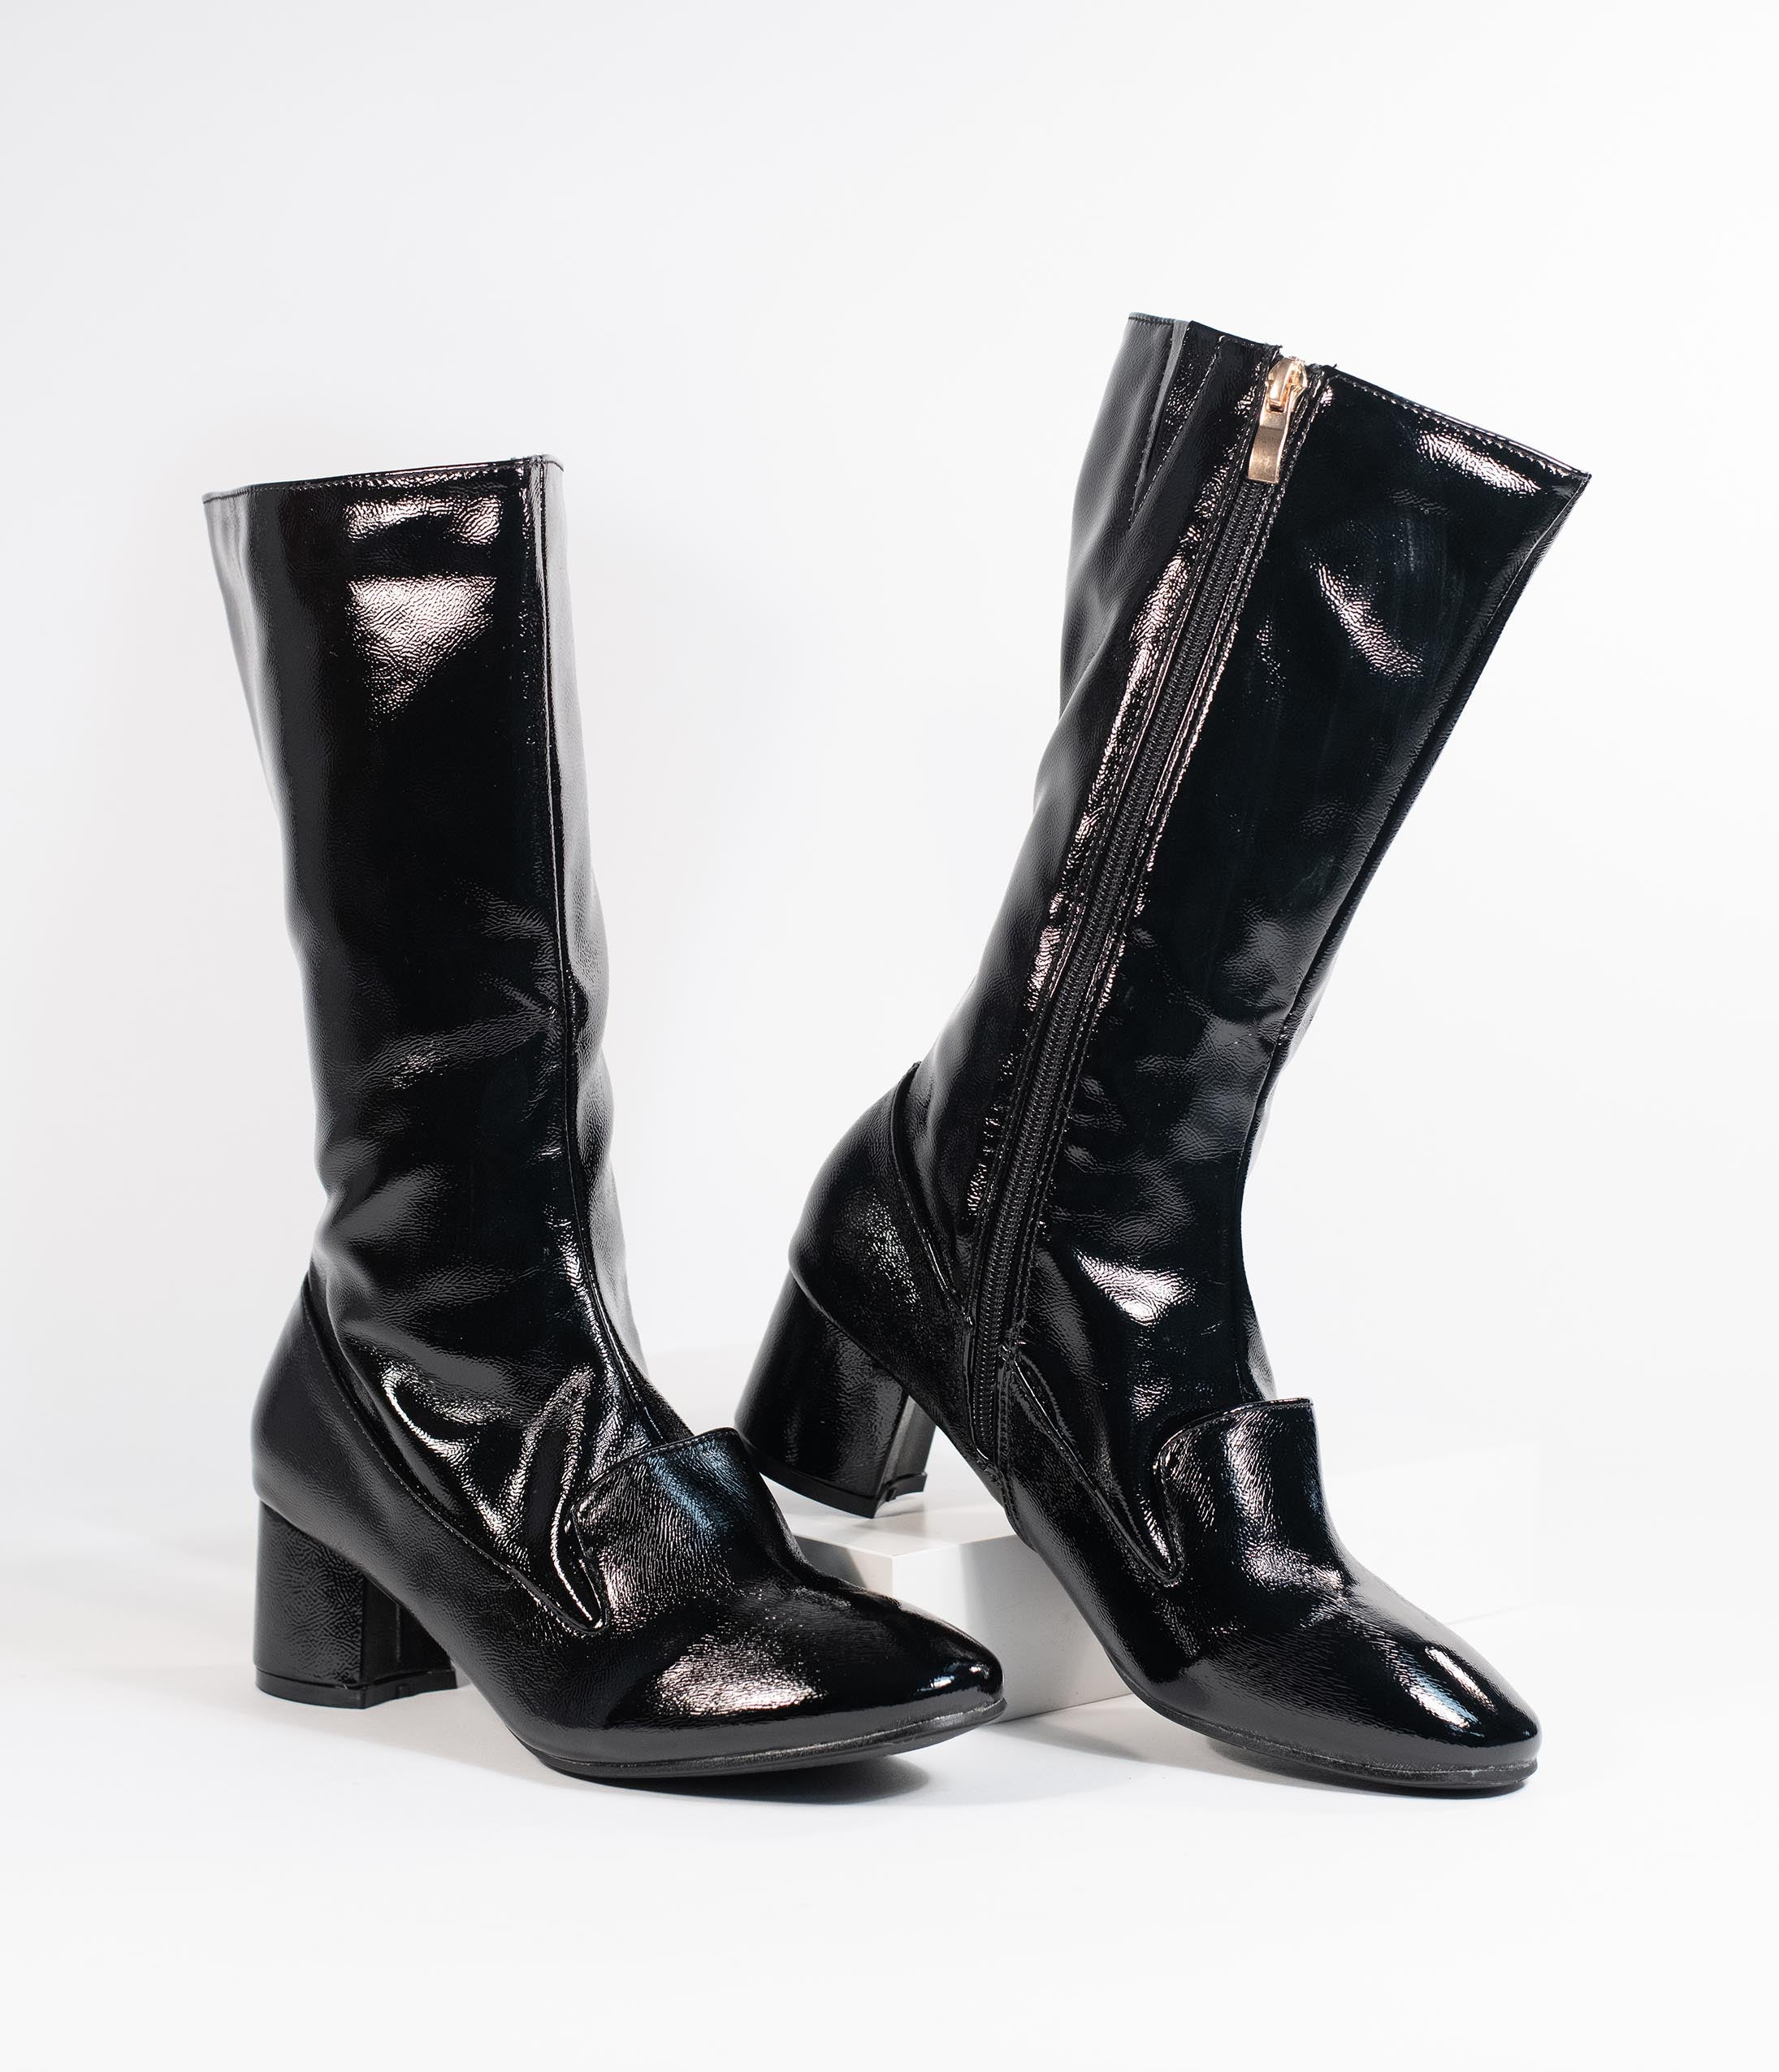 Vintage Style Shoes, Vintage Inspired Shoes 1960S Style Black Patent Leatherette Block Heel Modernist Boots $78.00 AT vintagedancer.com